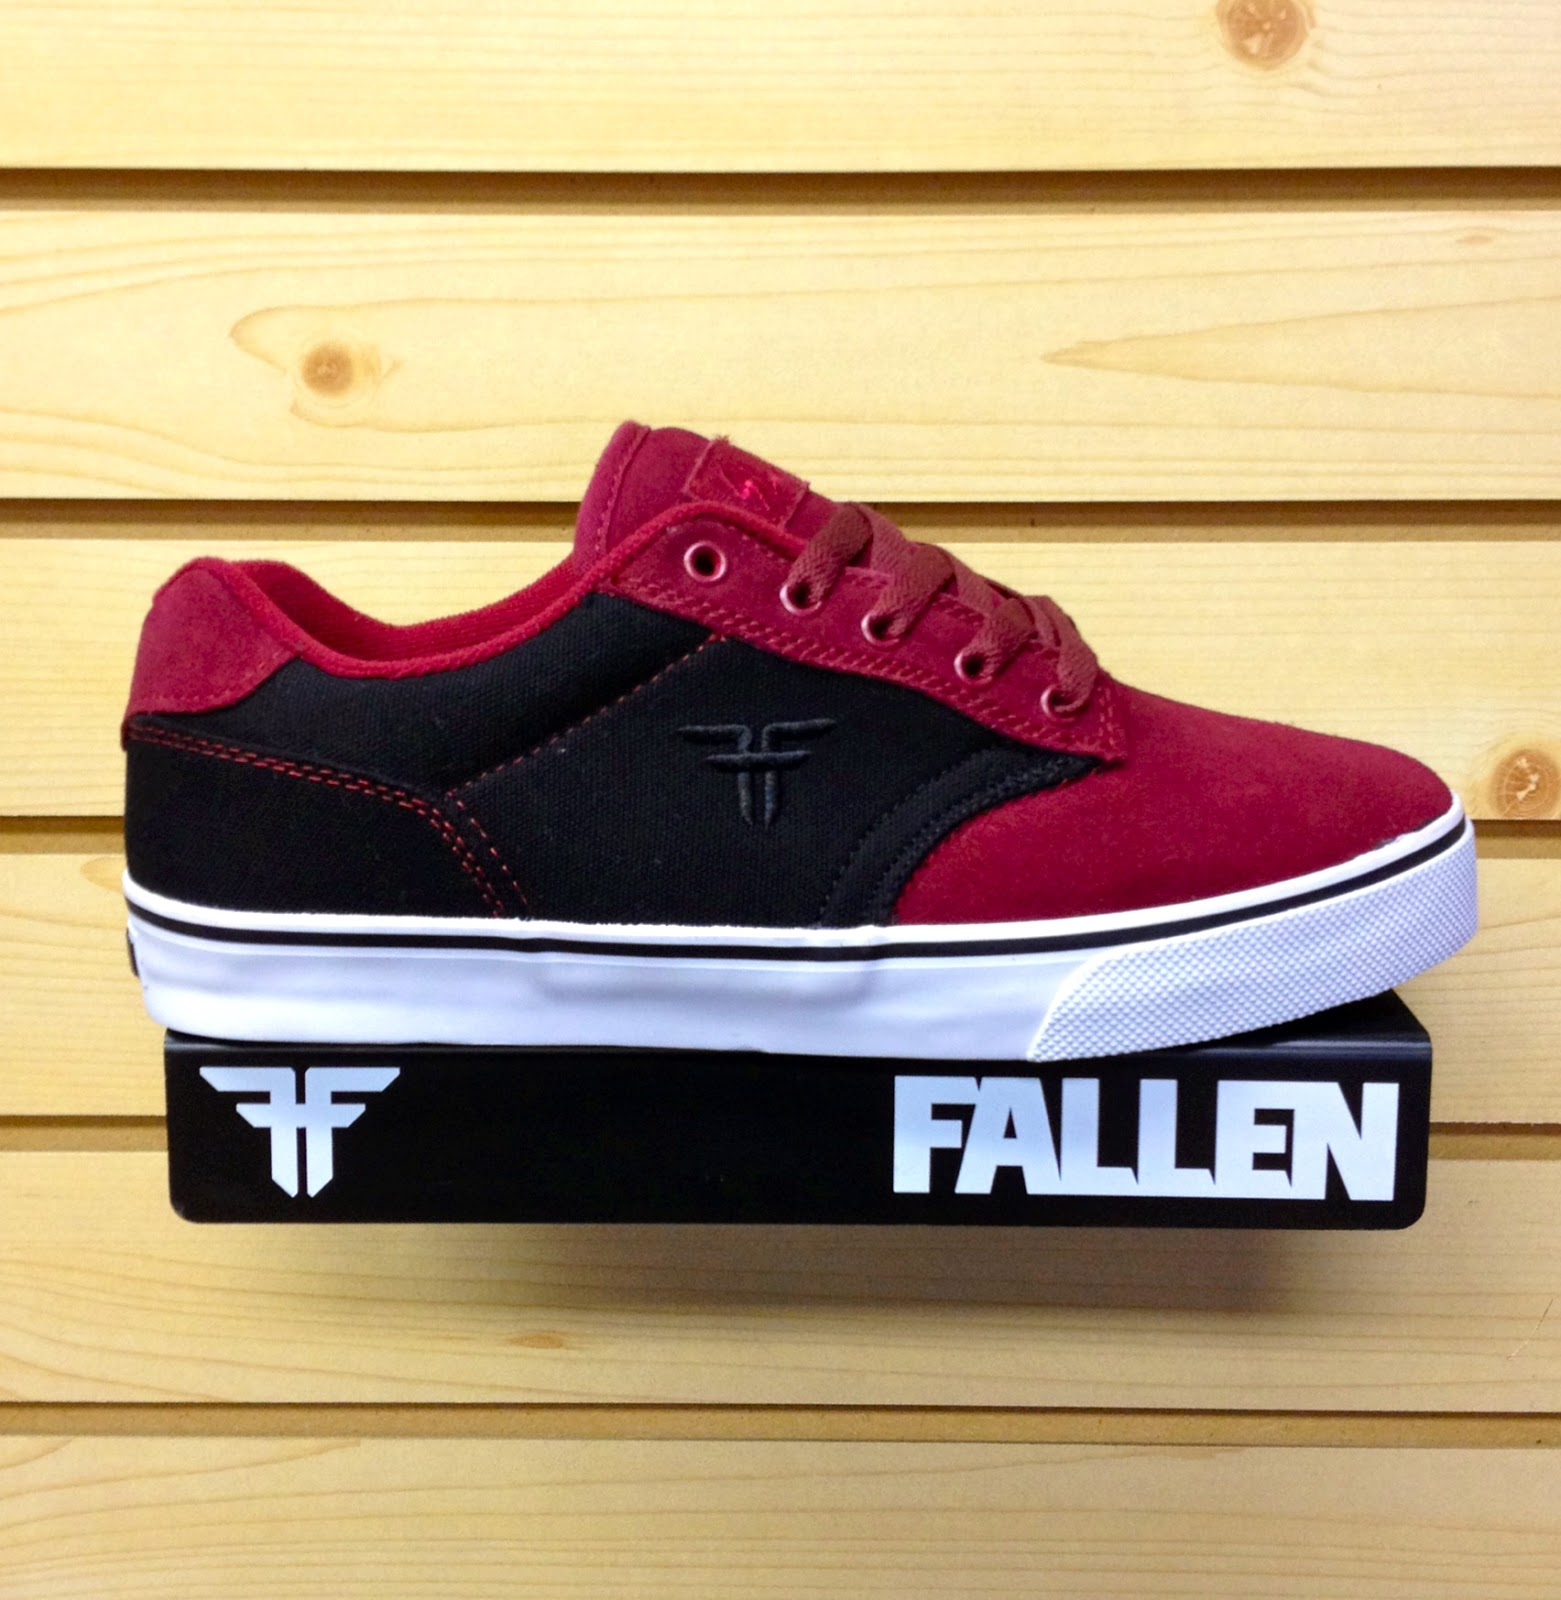 Shoes / Fallen Fallen Footwear was started in by professional skateboarder Jamie Thomas. The brand would branch off of the successful Black Box Distribution, and house some of the most popular and legendary skateboarders of all time, including Chris Cole, .